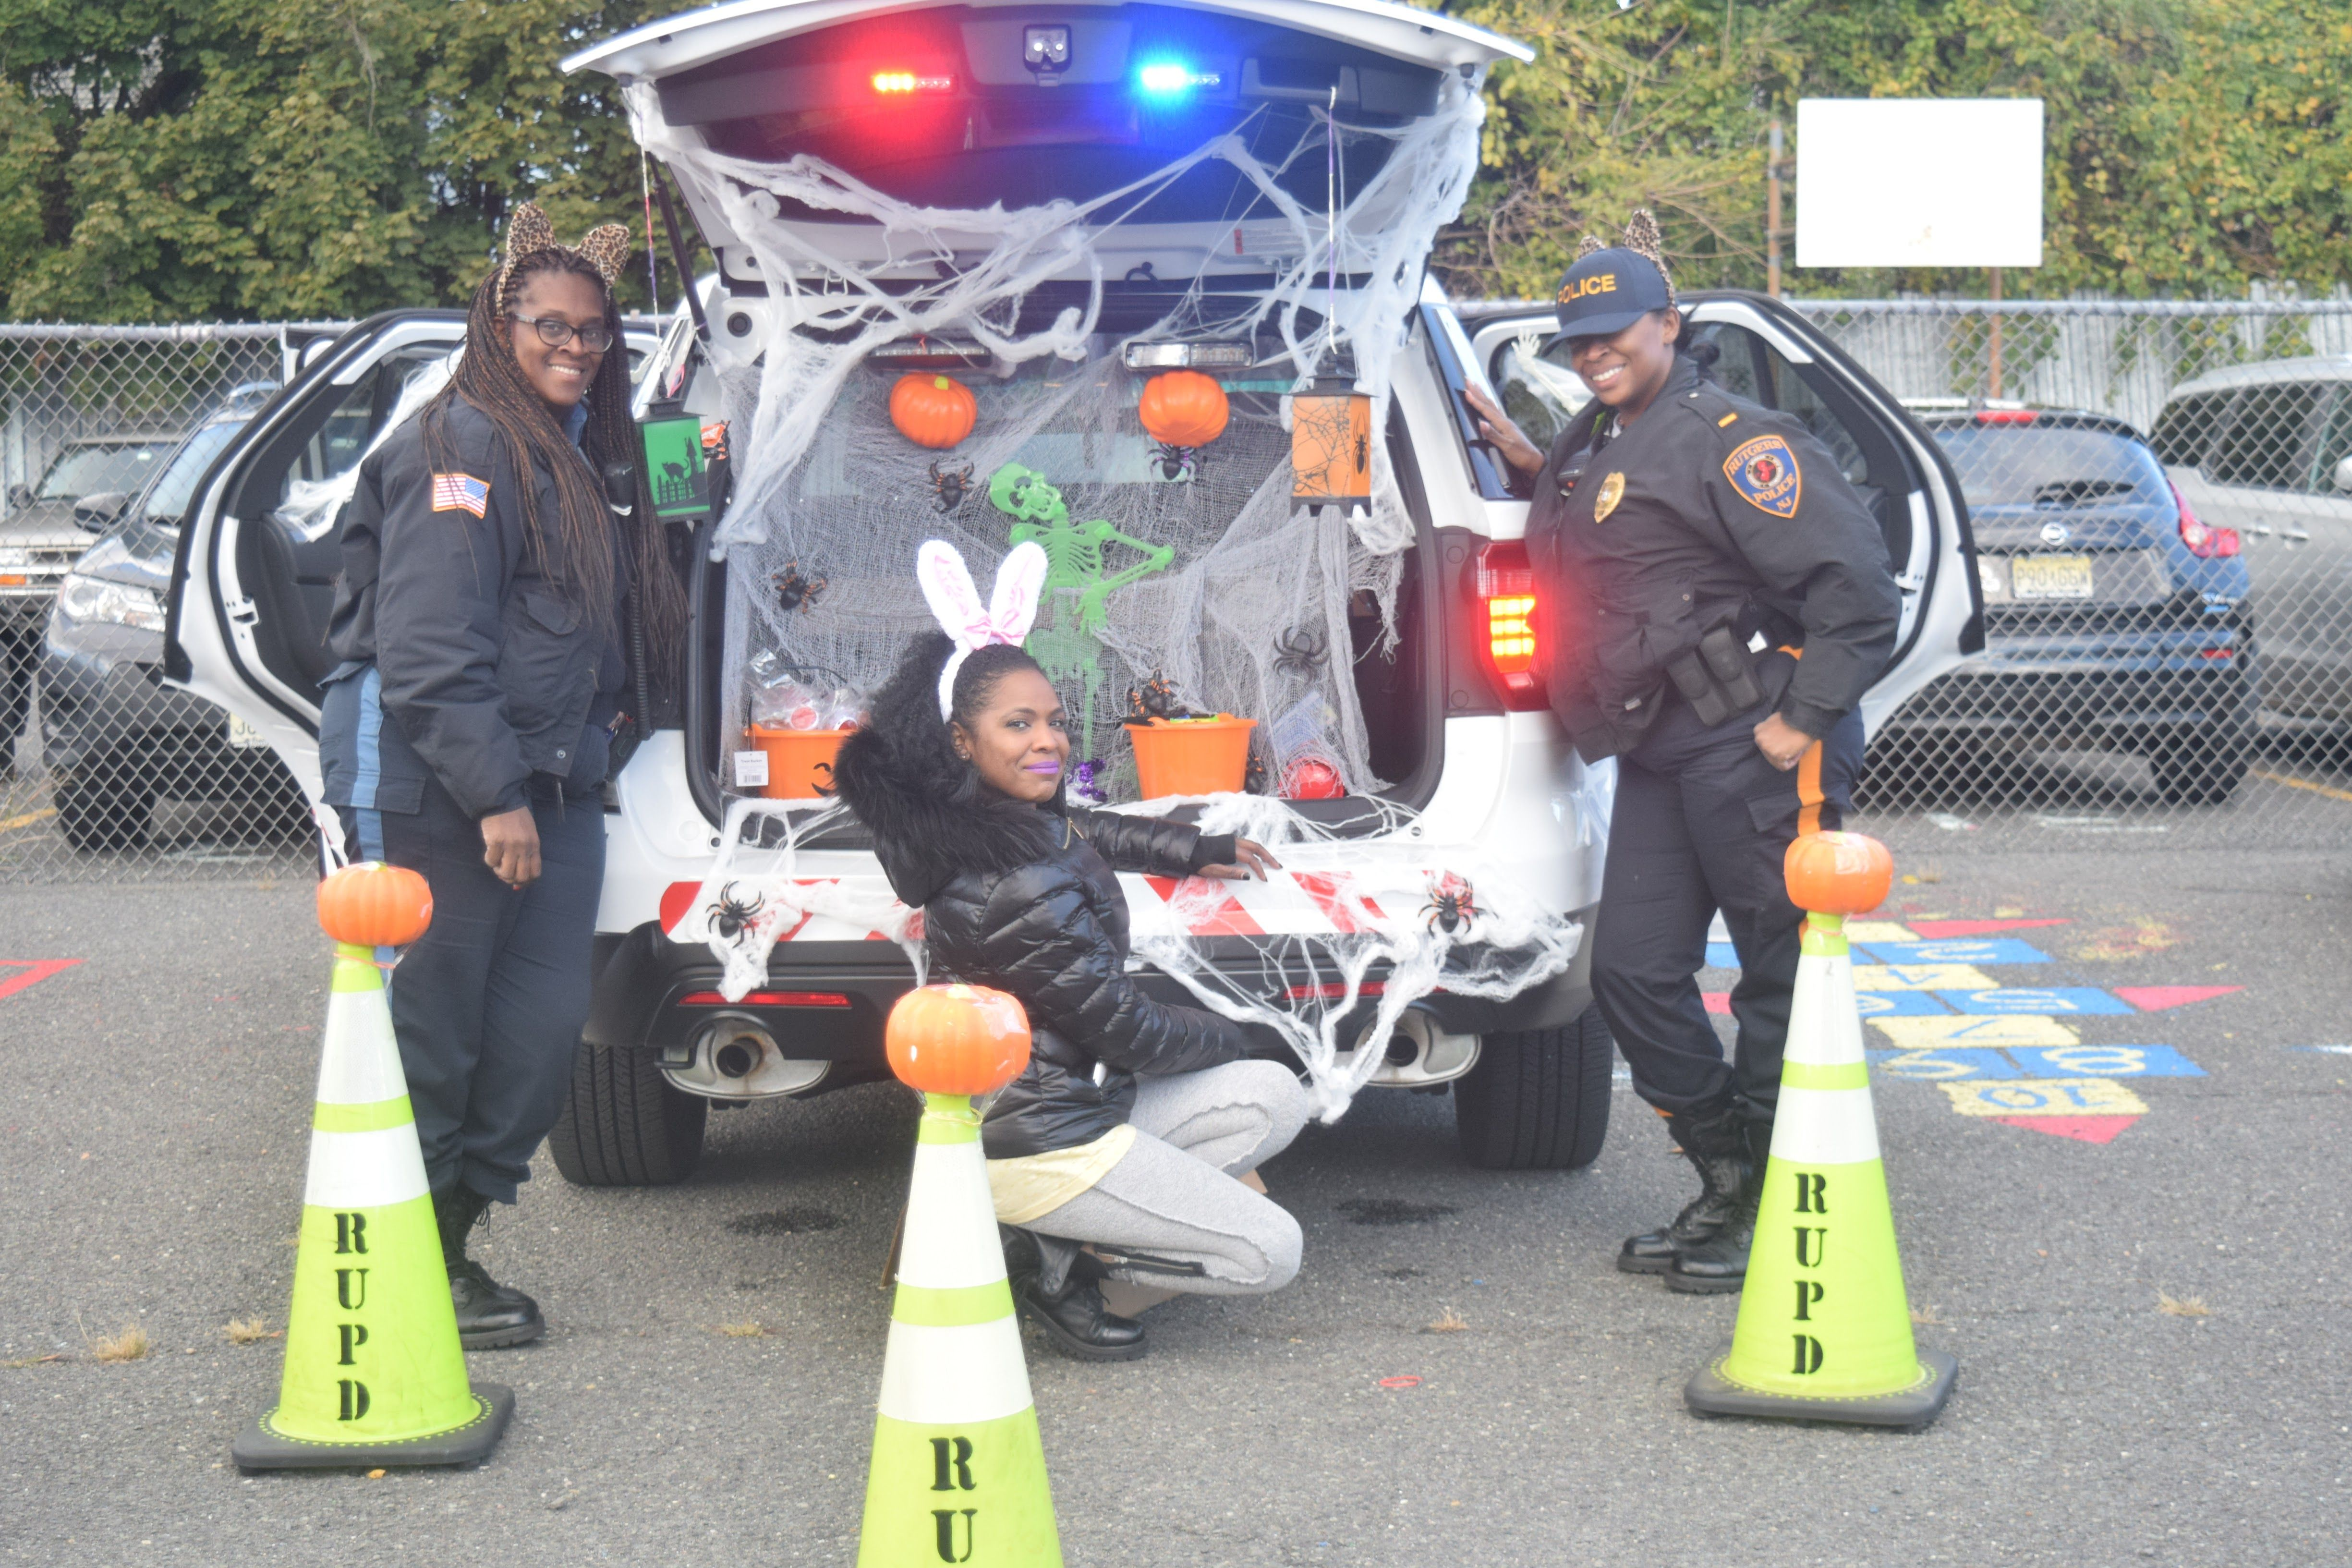 Trunk Or Treat Rutgers University Police Department Newark Hosted Trunk Or Treat At The Cclc Daycare Center Trunk Or Treat Happy Halloween Fall Festival